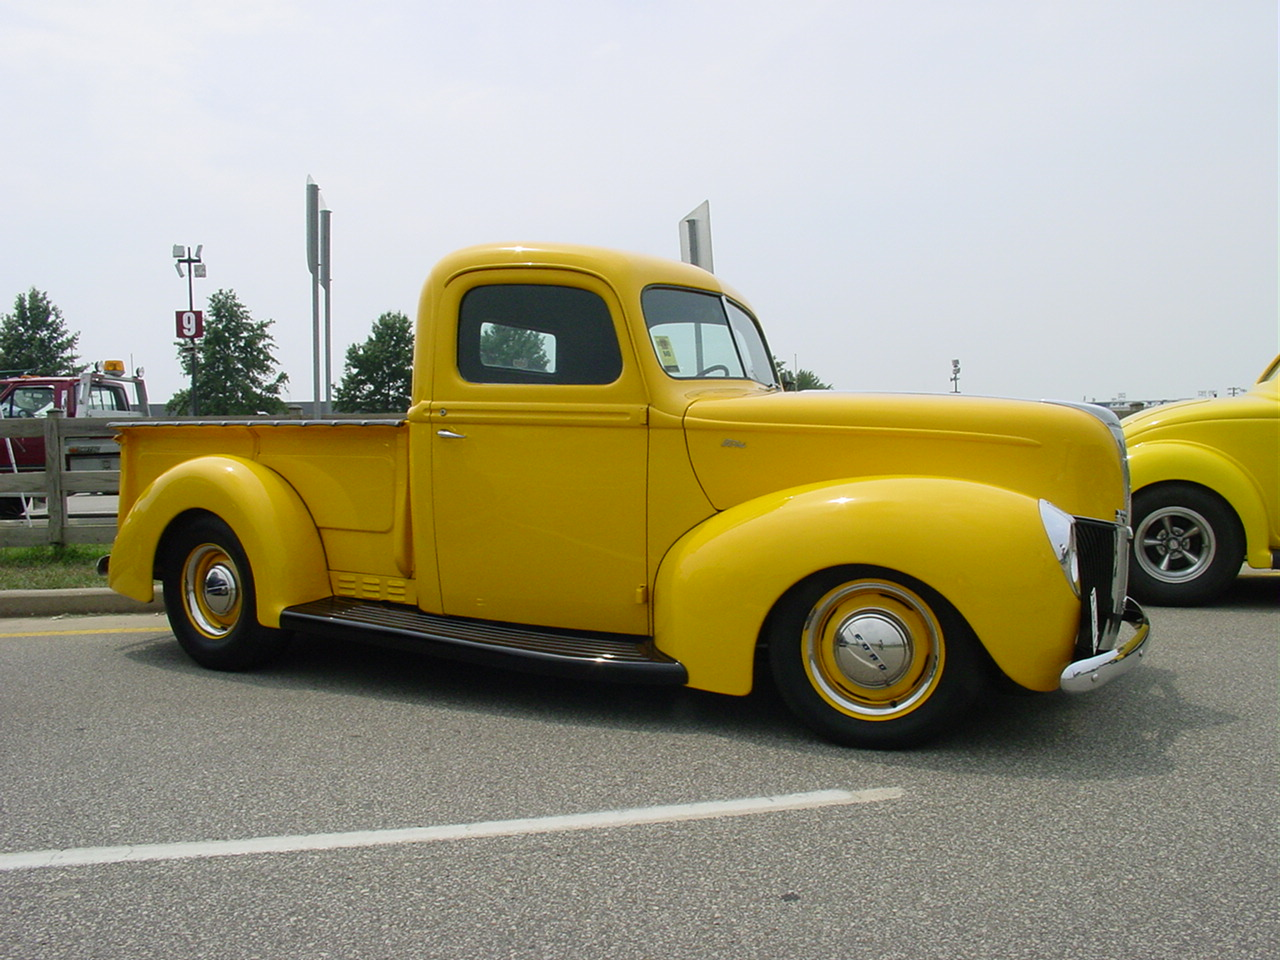 Gary Opitz' '40 Ford Pickup